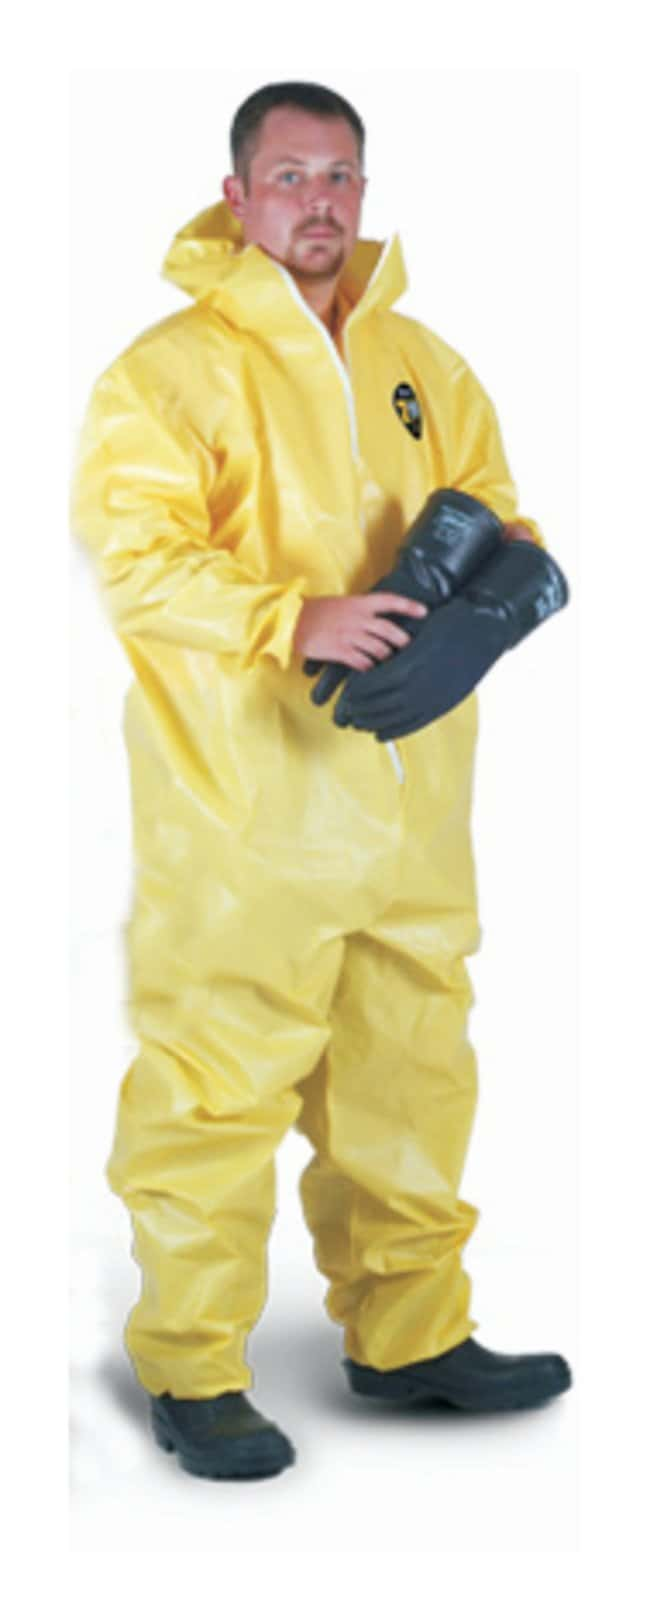 Kappler Zytron 100 Chemical-Resistant Coveralls Serged Seams; Collar, open